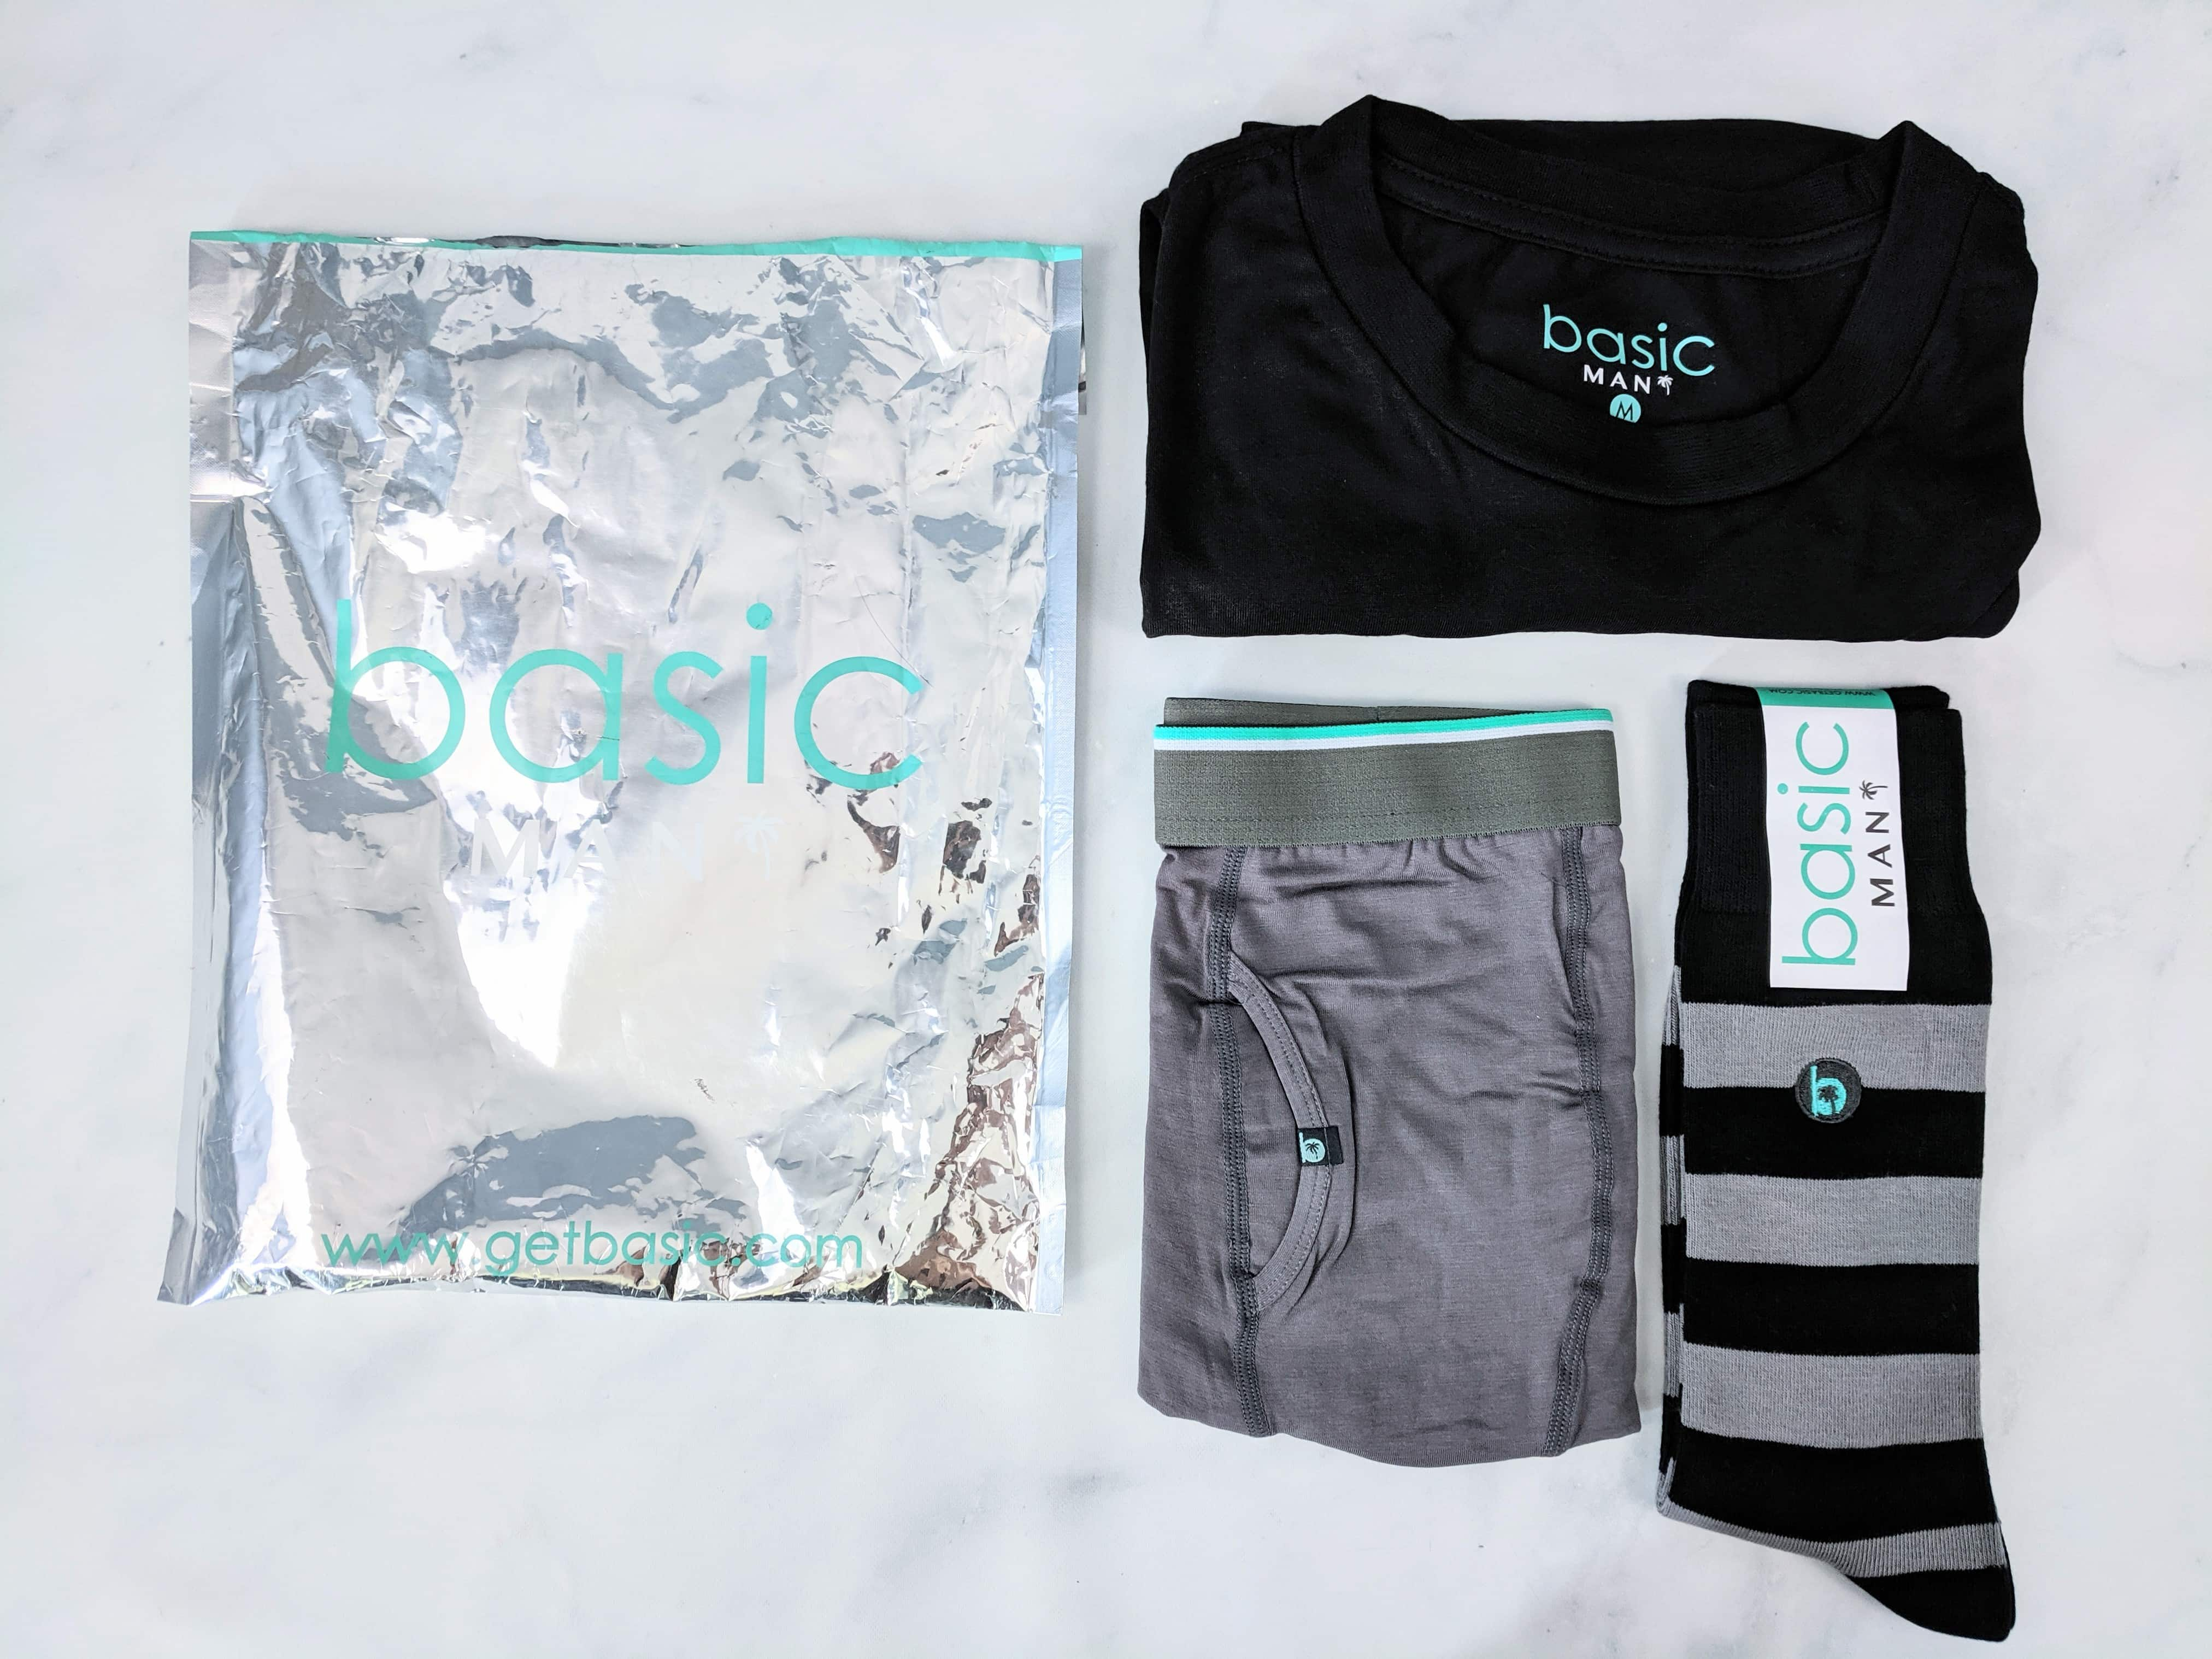 Basic MAN Subscription Box July 2019 Review + 50% Off Coupon